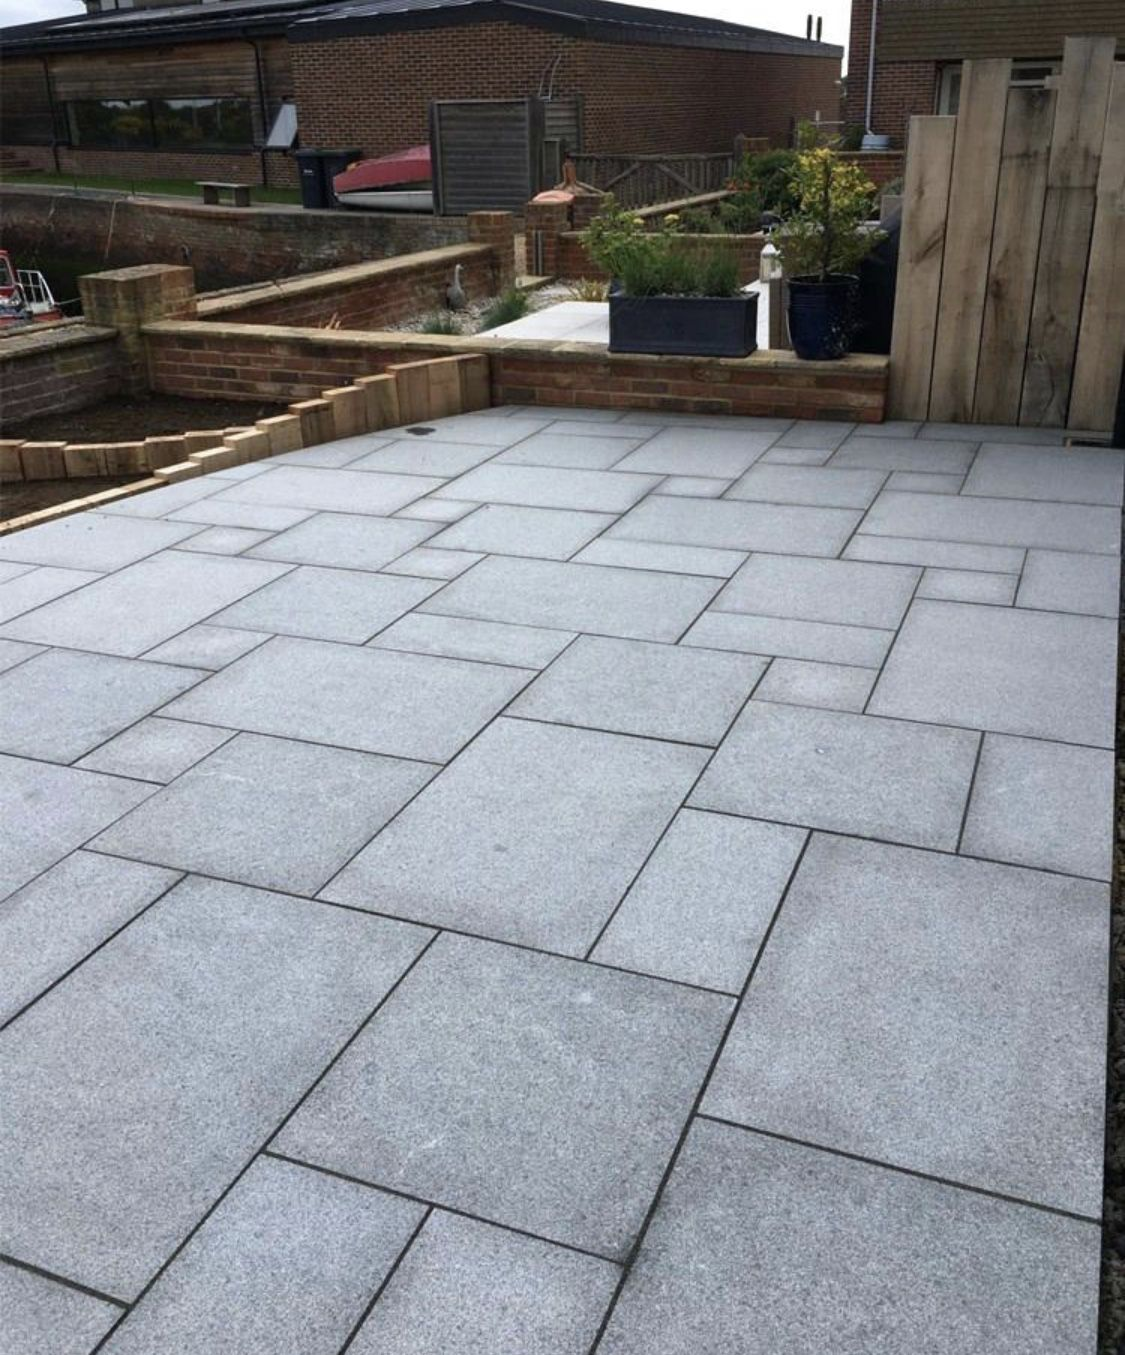 Pin By Manhattan Perry On Thorpe Ave Patio Slabs Patio Garden Design Granite Paving